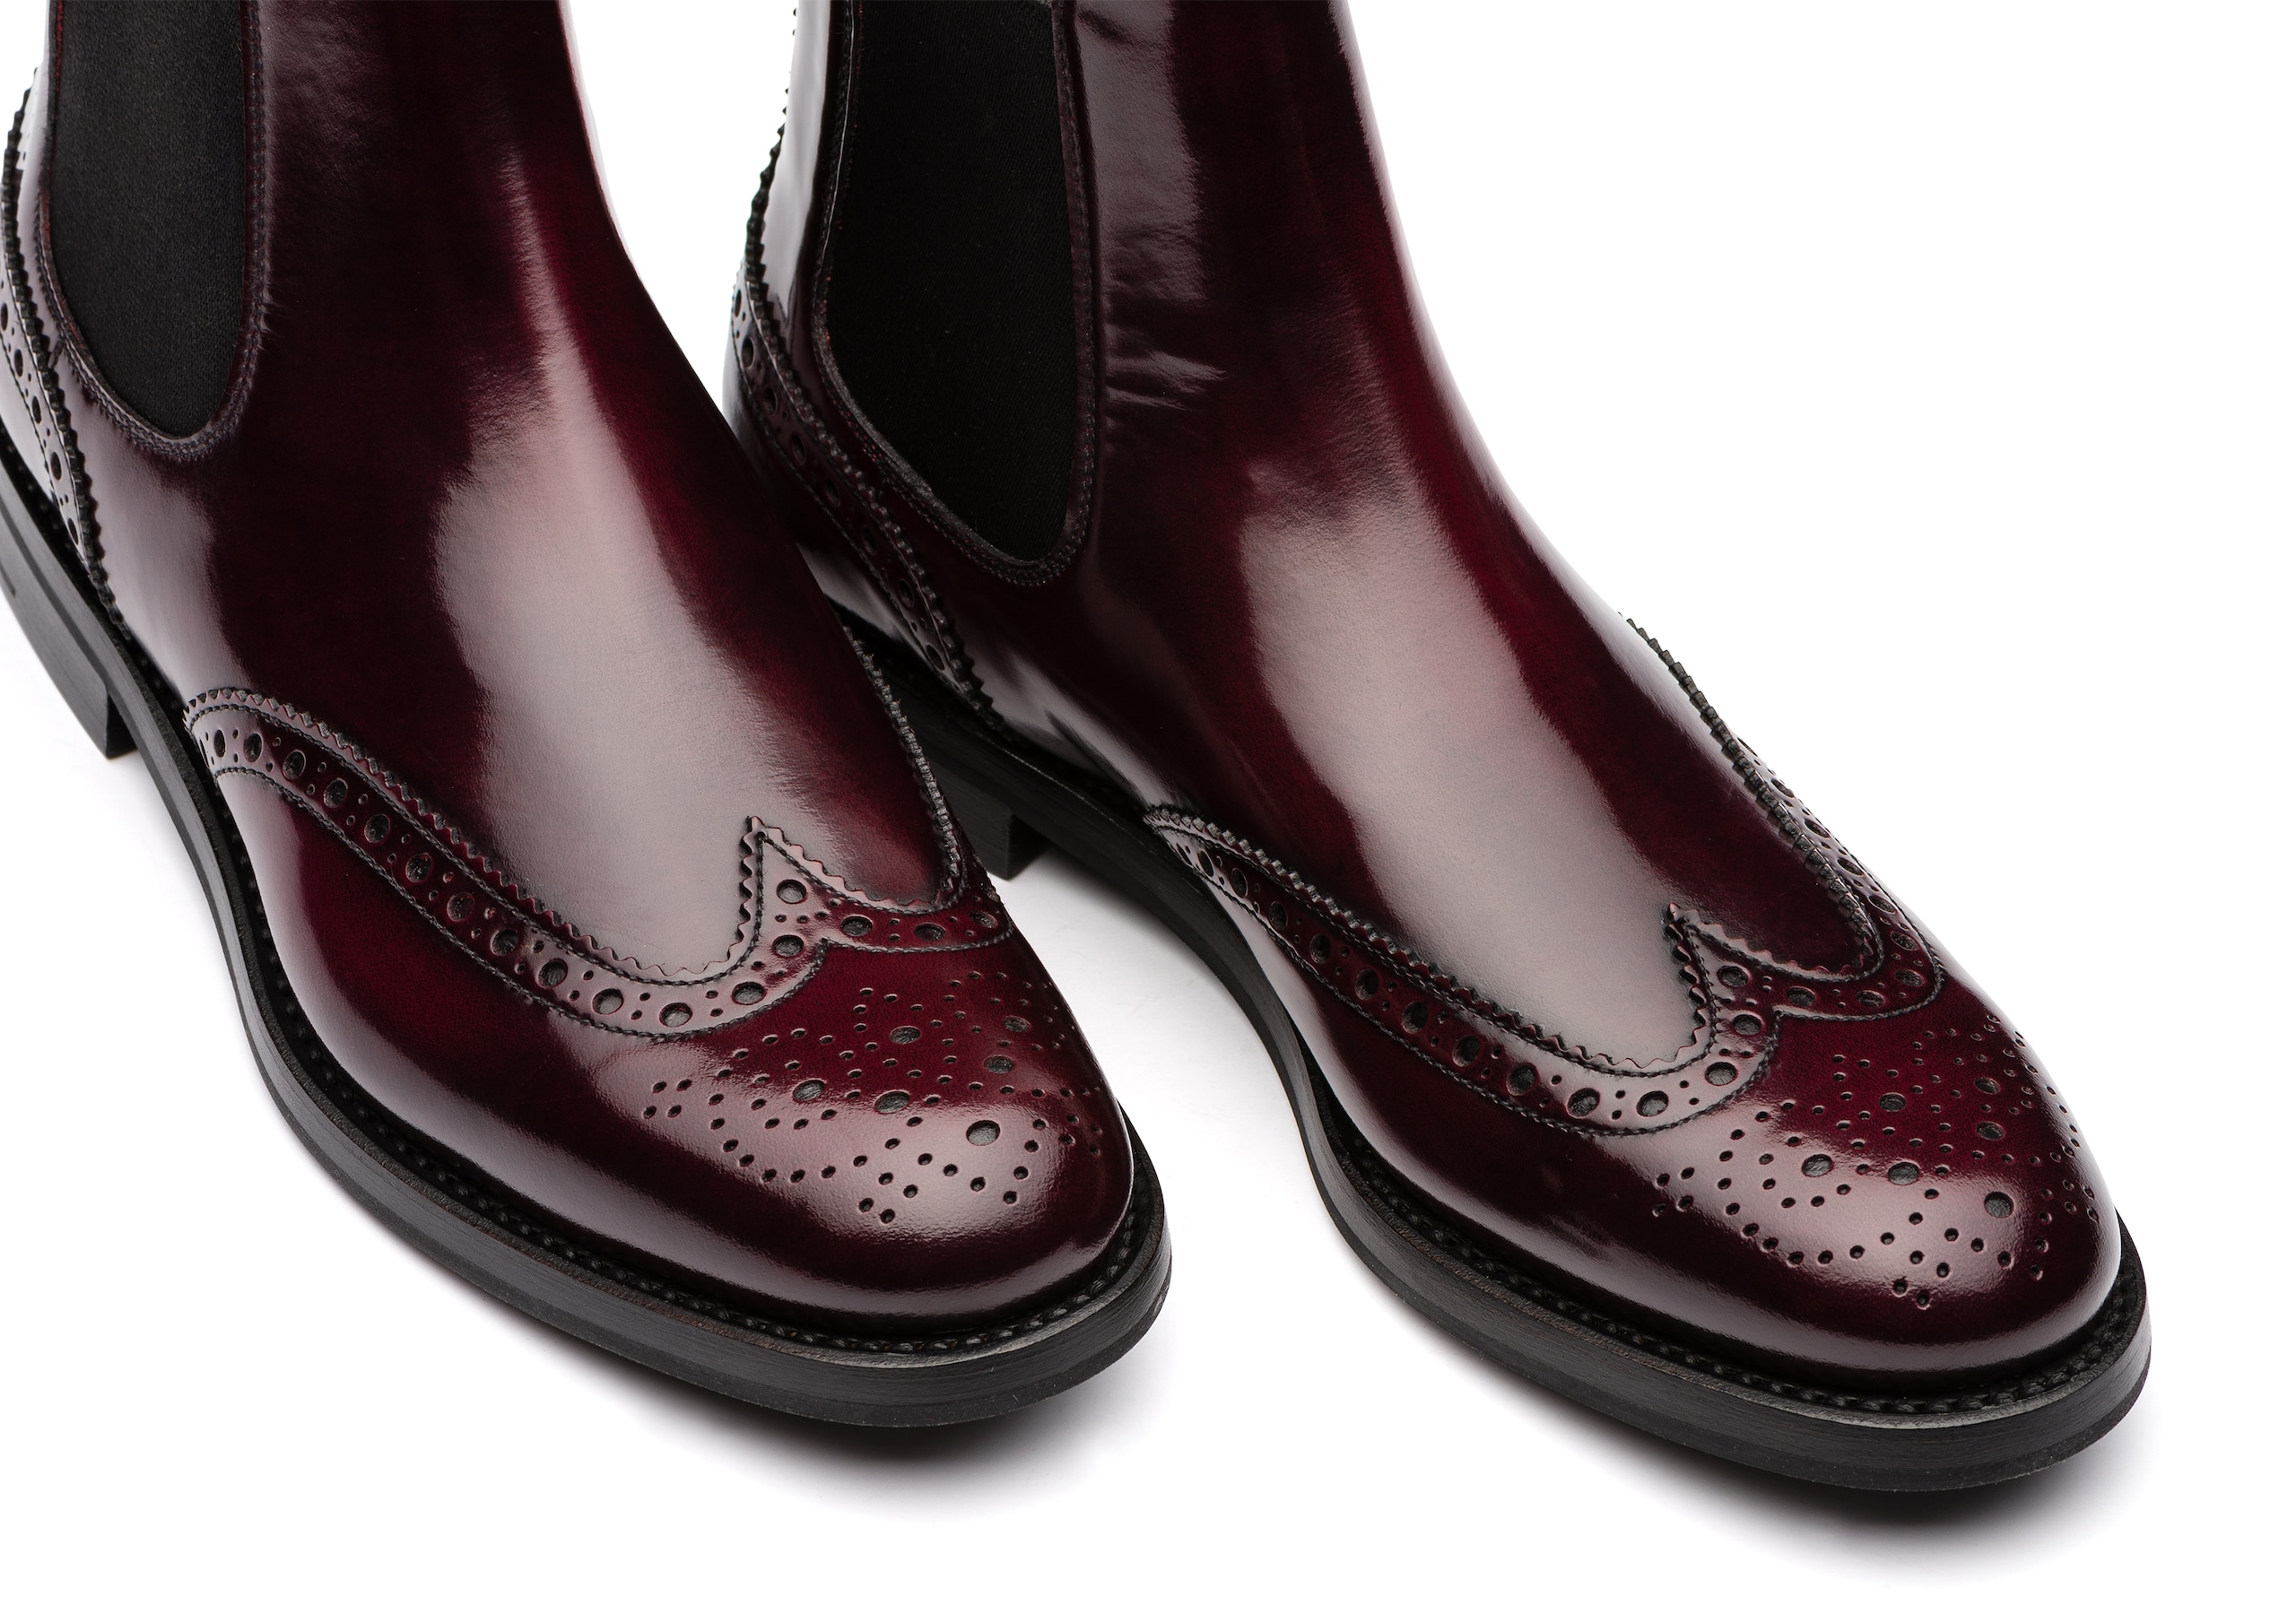 Ketsby wg Church's Polished Fumè Brogue Chelsea Boot Burgundy